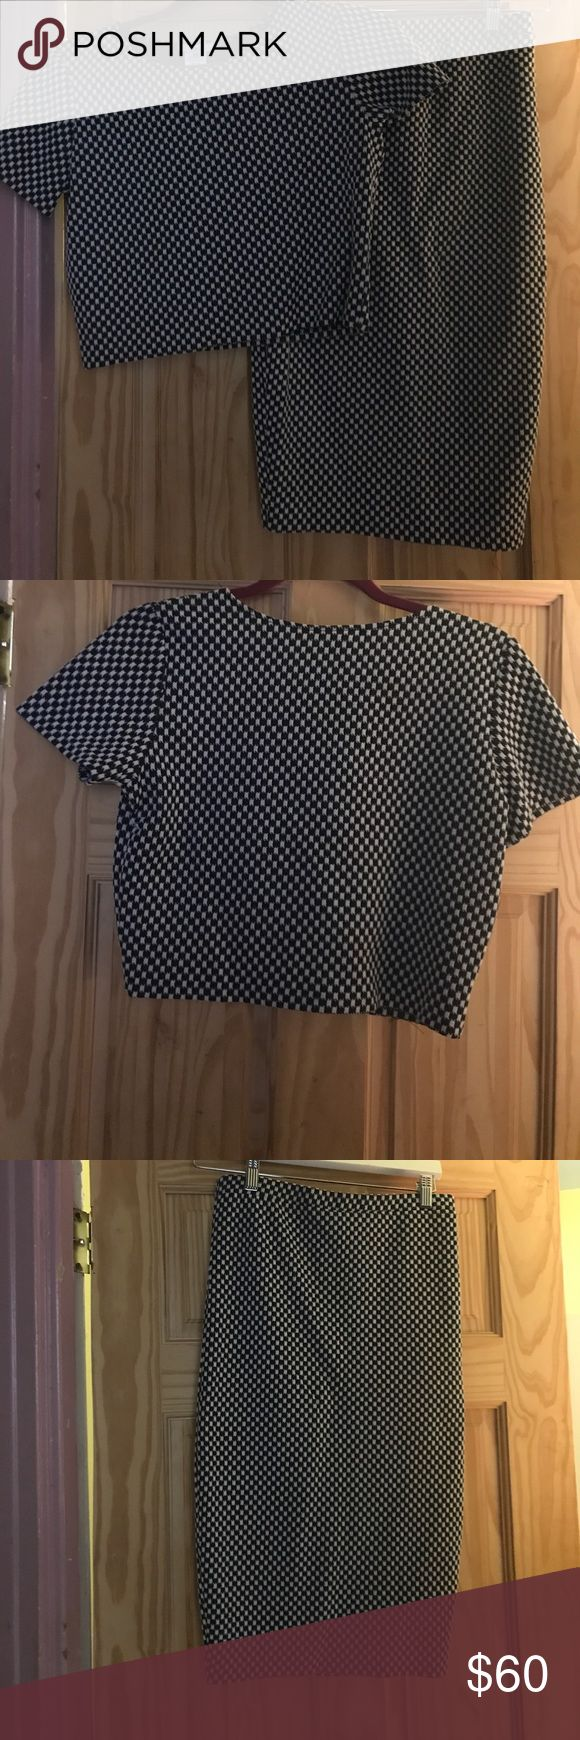 Crop top and pencil skirt set Black and white checkered pattern. Very on trend! Fitted items. Elastic stretch in waist band of skirt. Crop Tops falls right under bra strap length. Never worn, tags removed. Bar III Other